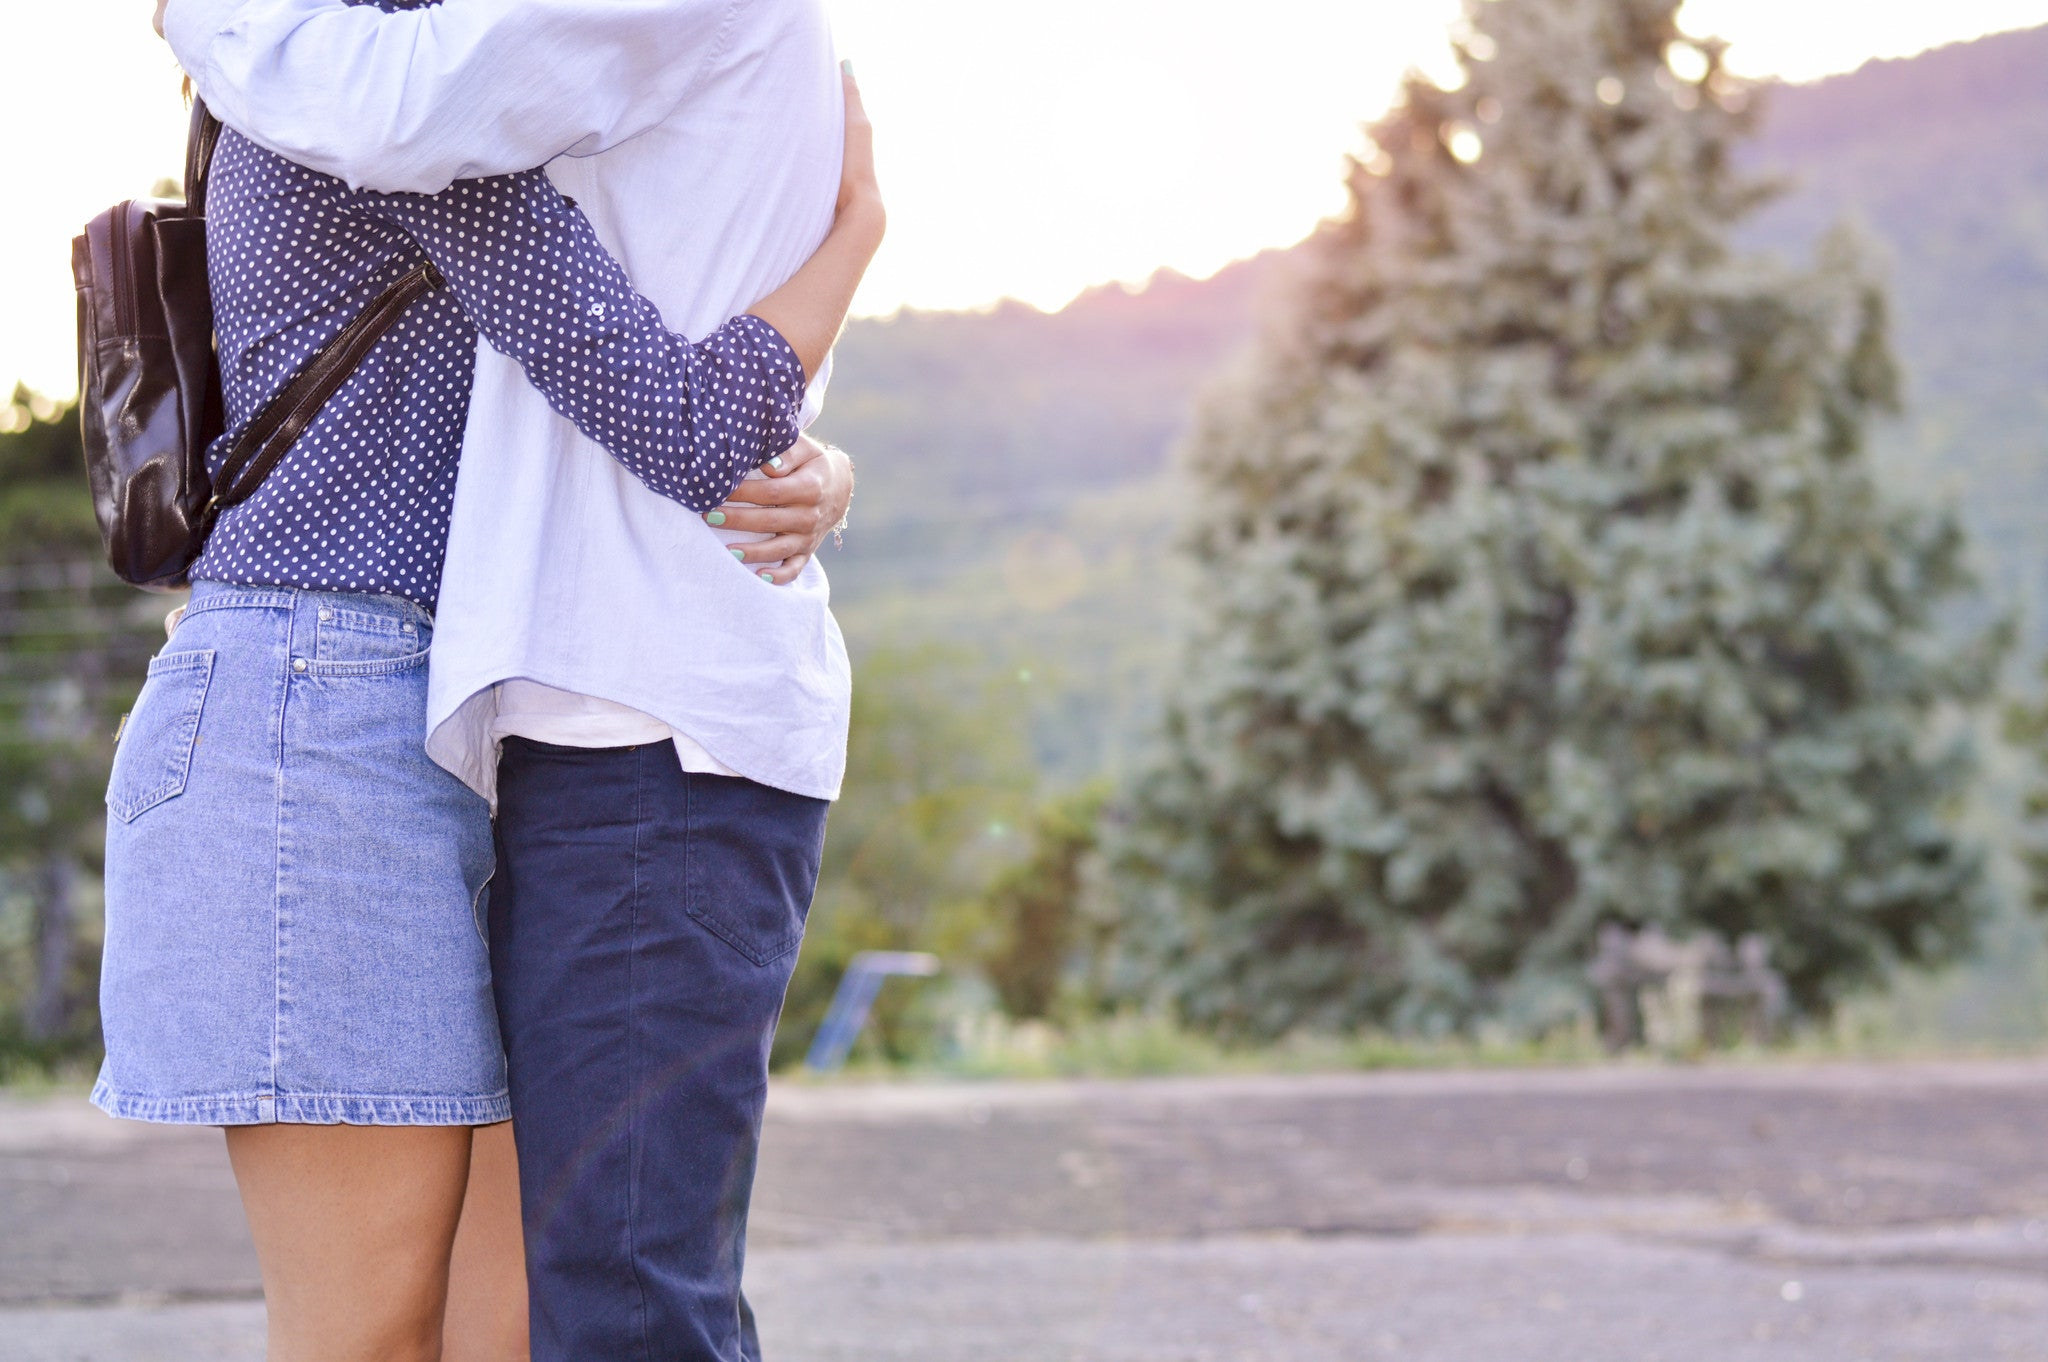 Hug For Health: The Importance of Touch